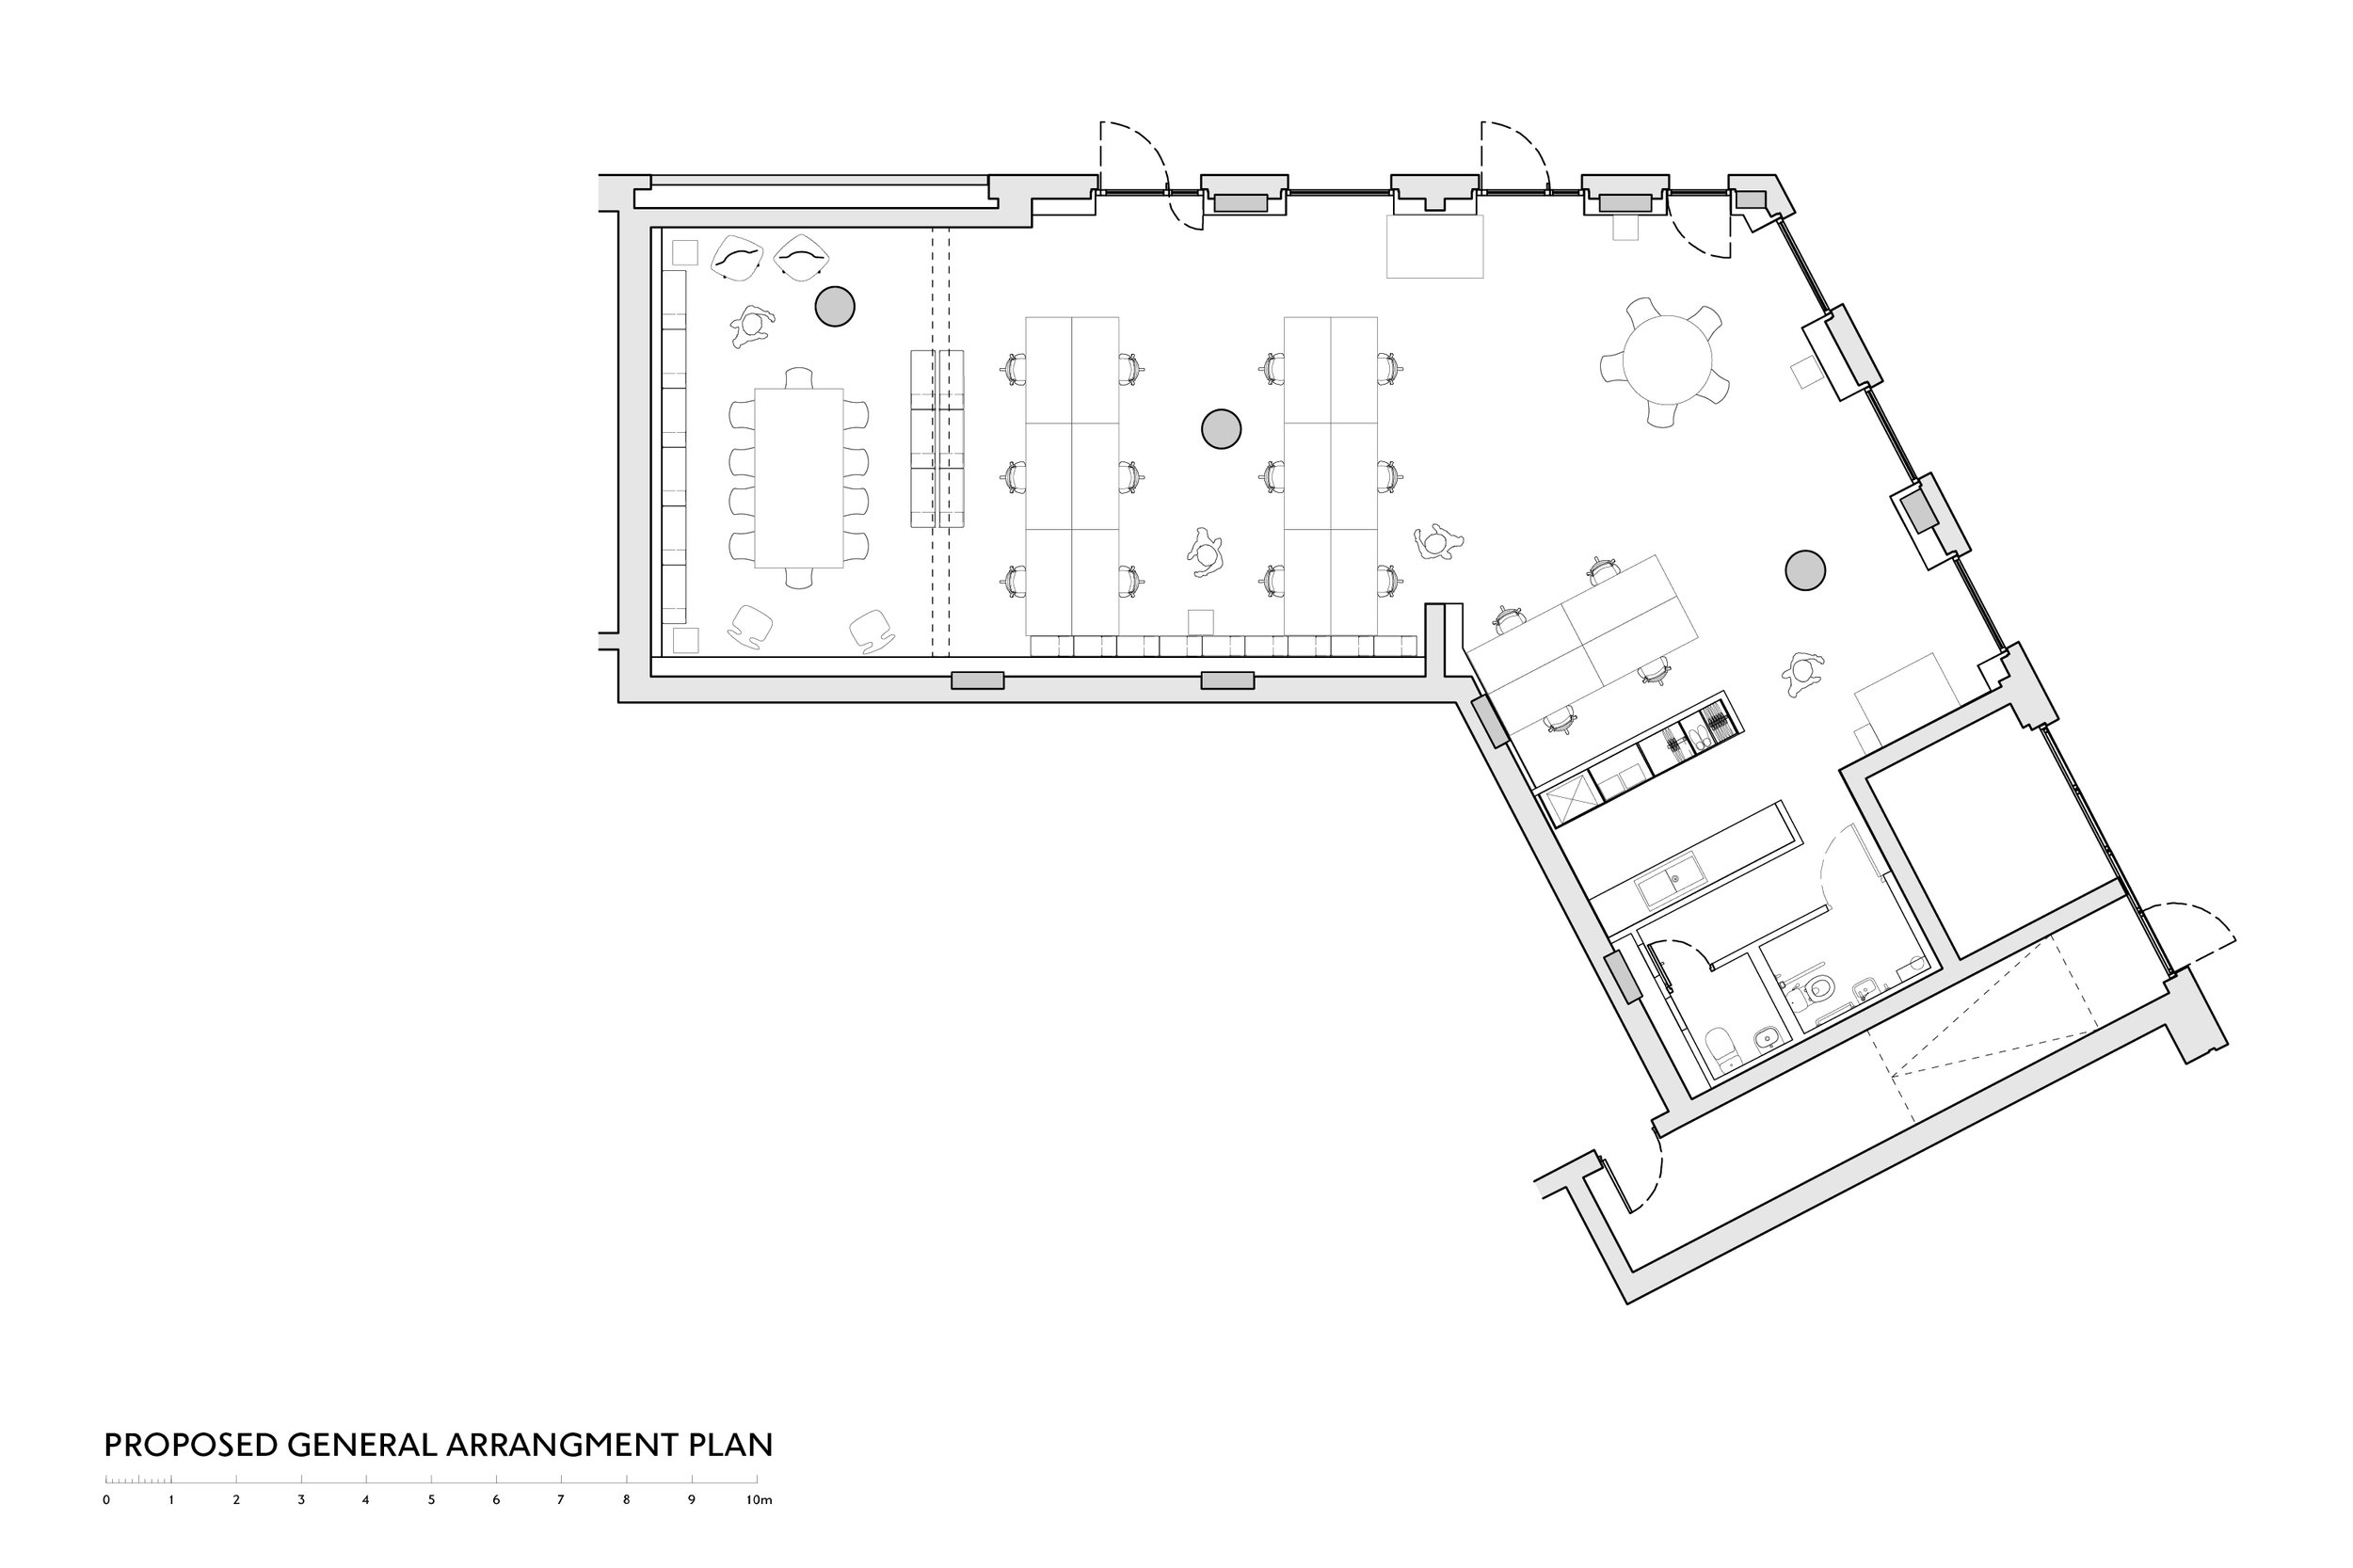 Floor Plan of NB Studio Graphic Design in Blackfriars Circus